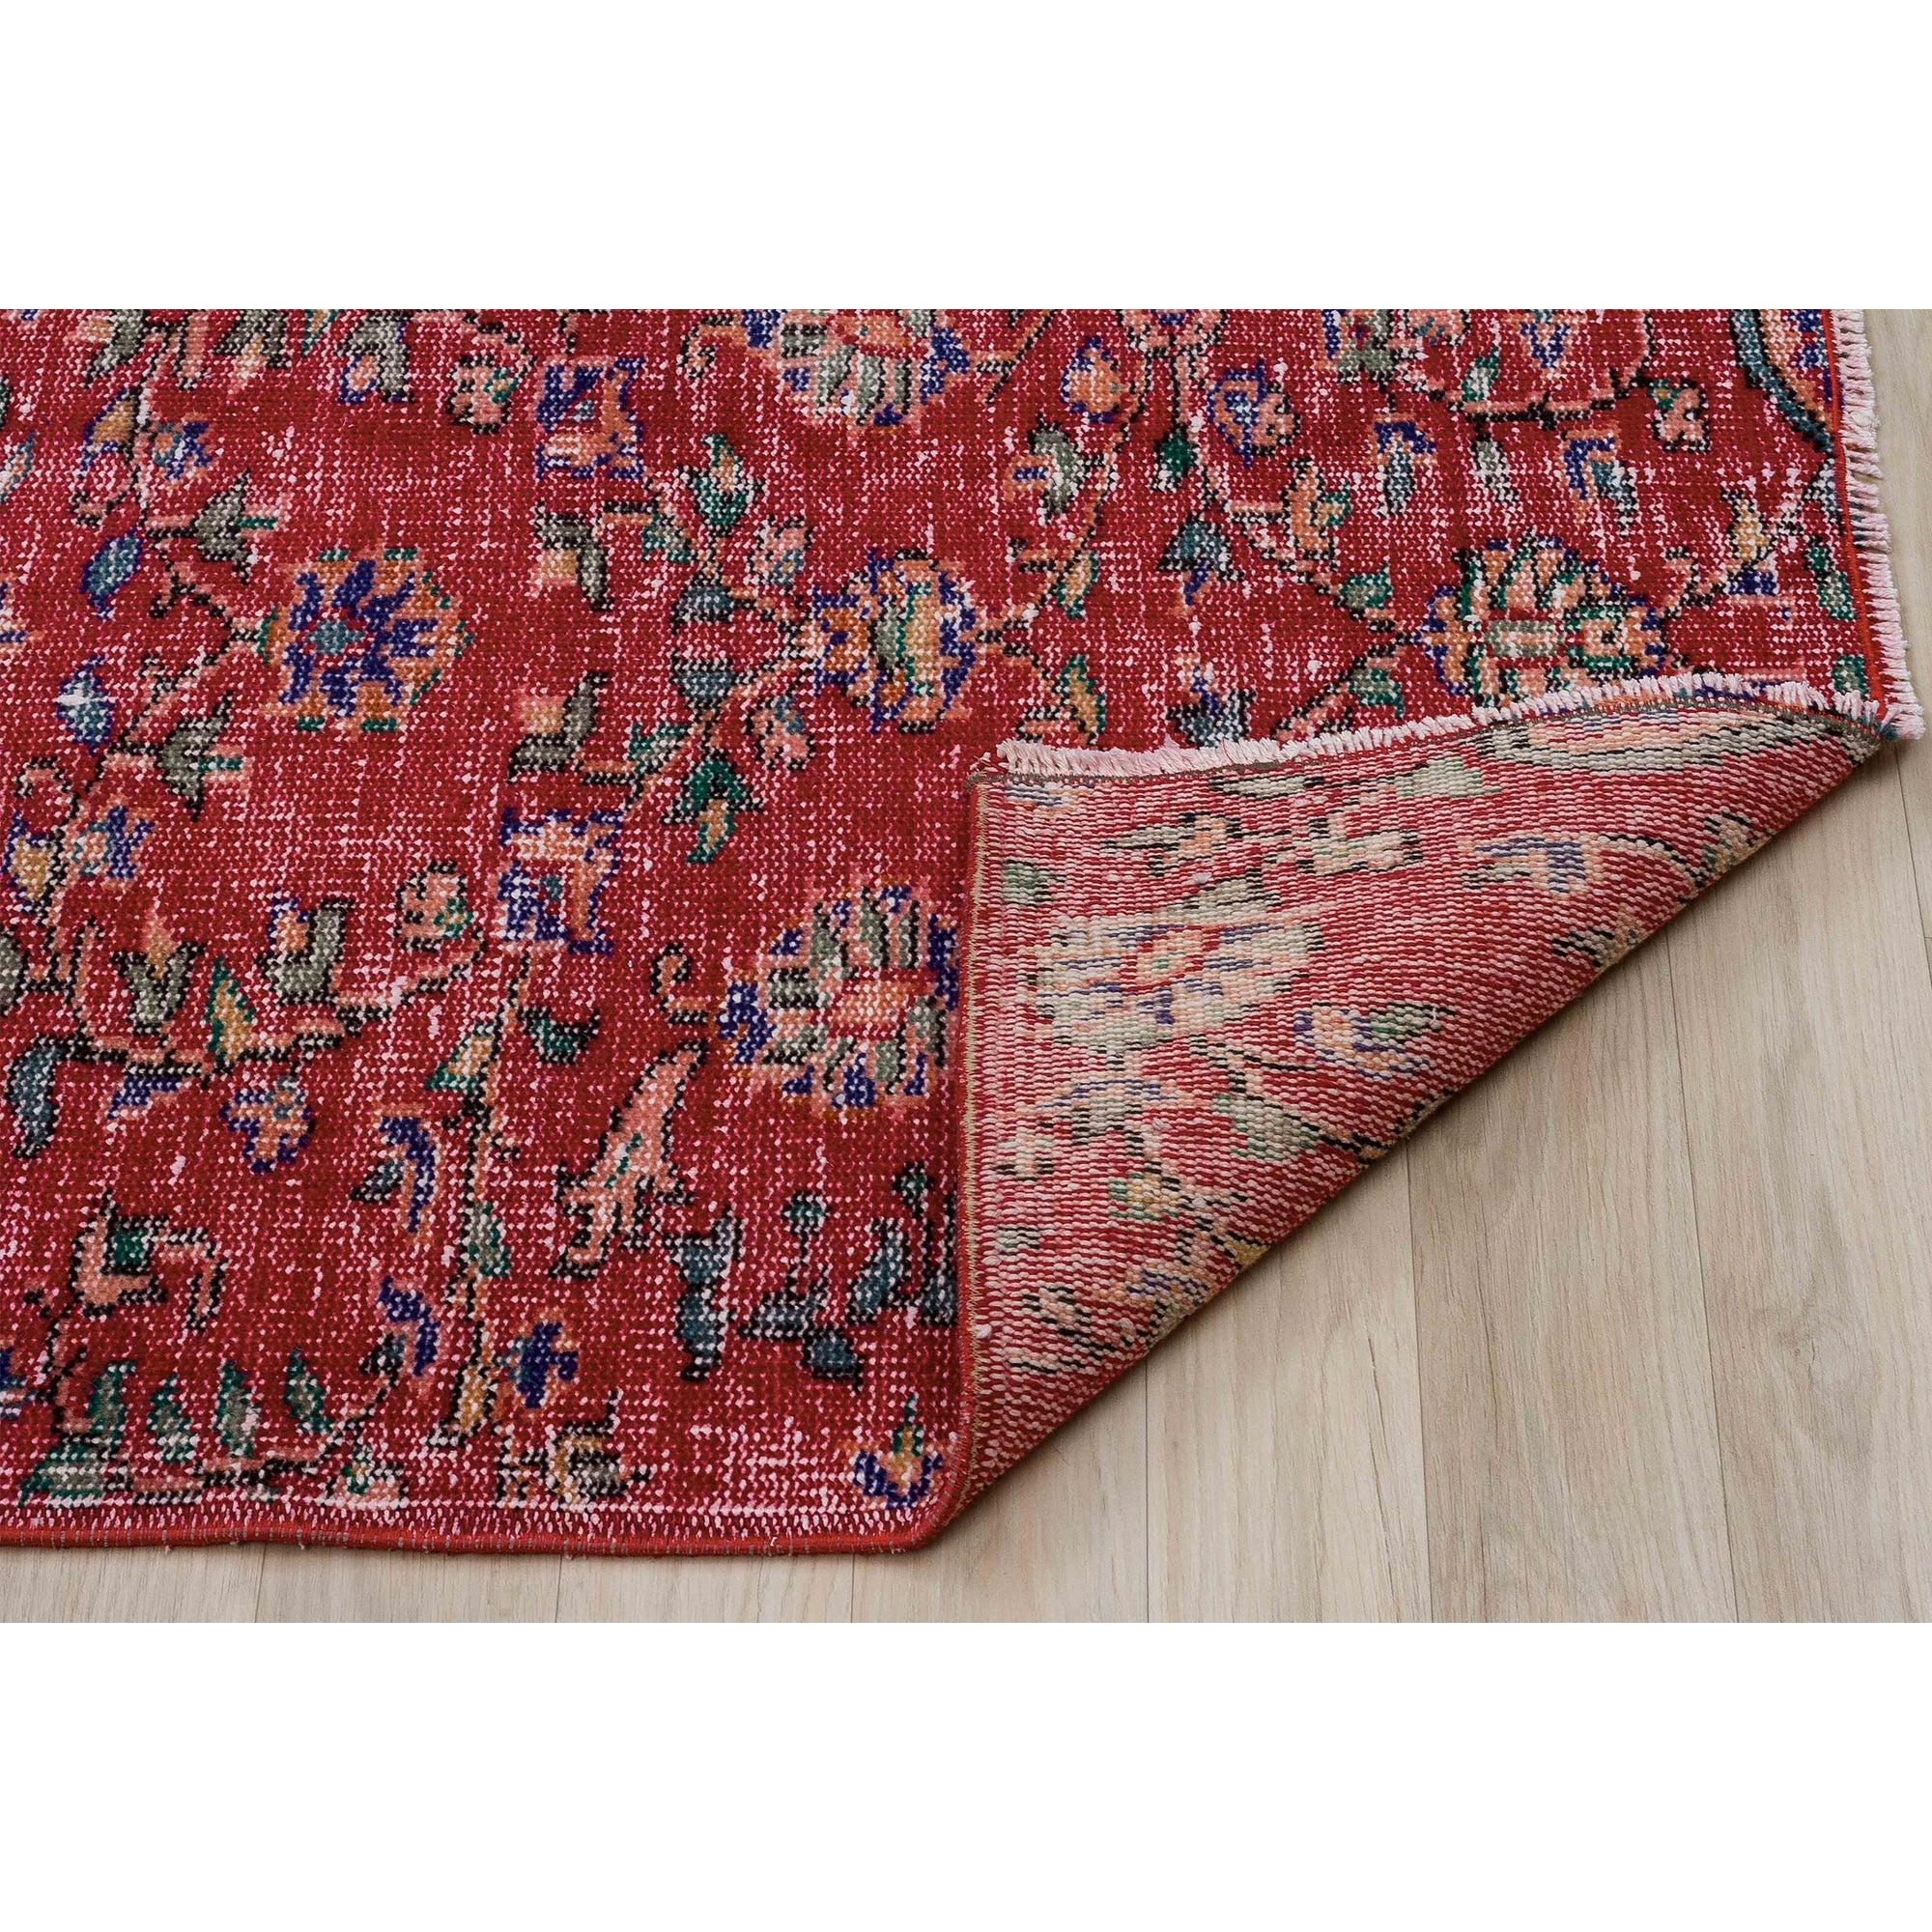 179 X 309 Anatolian Hand Knotted Carpet Vintage Style 60N2763 -  179 × 309 سجادة أناضولية معقودة يدويًا - Shop Online Furniture and Home Decor Store in Dubai, UAE at ebarza